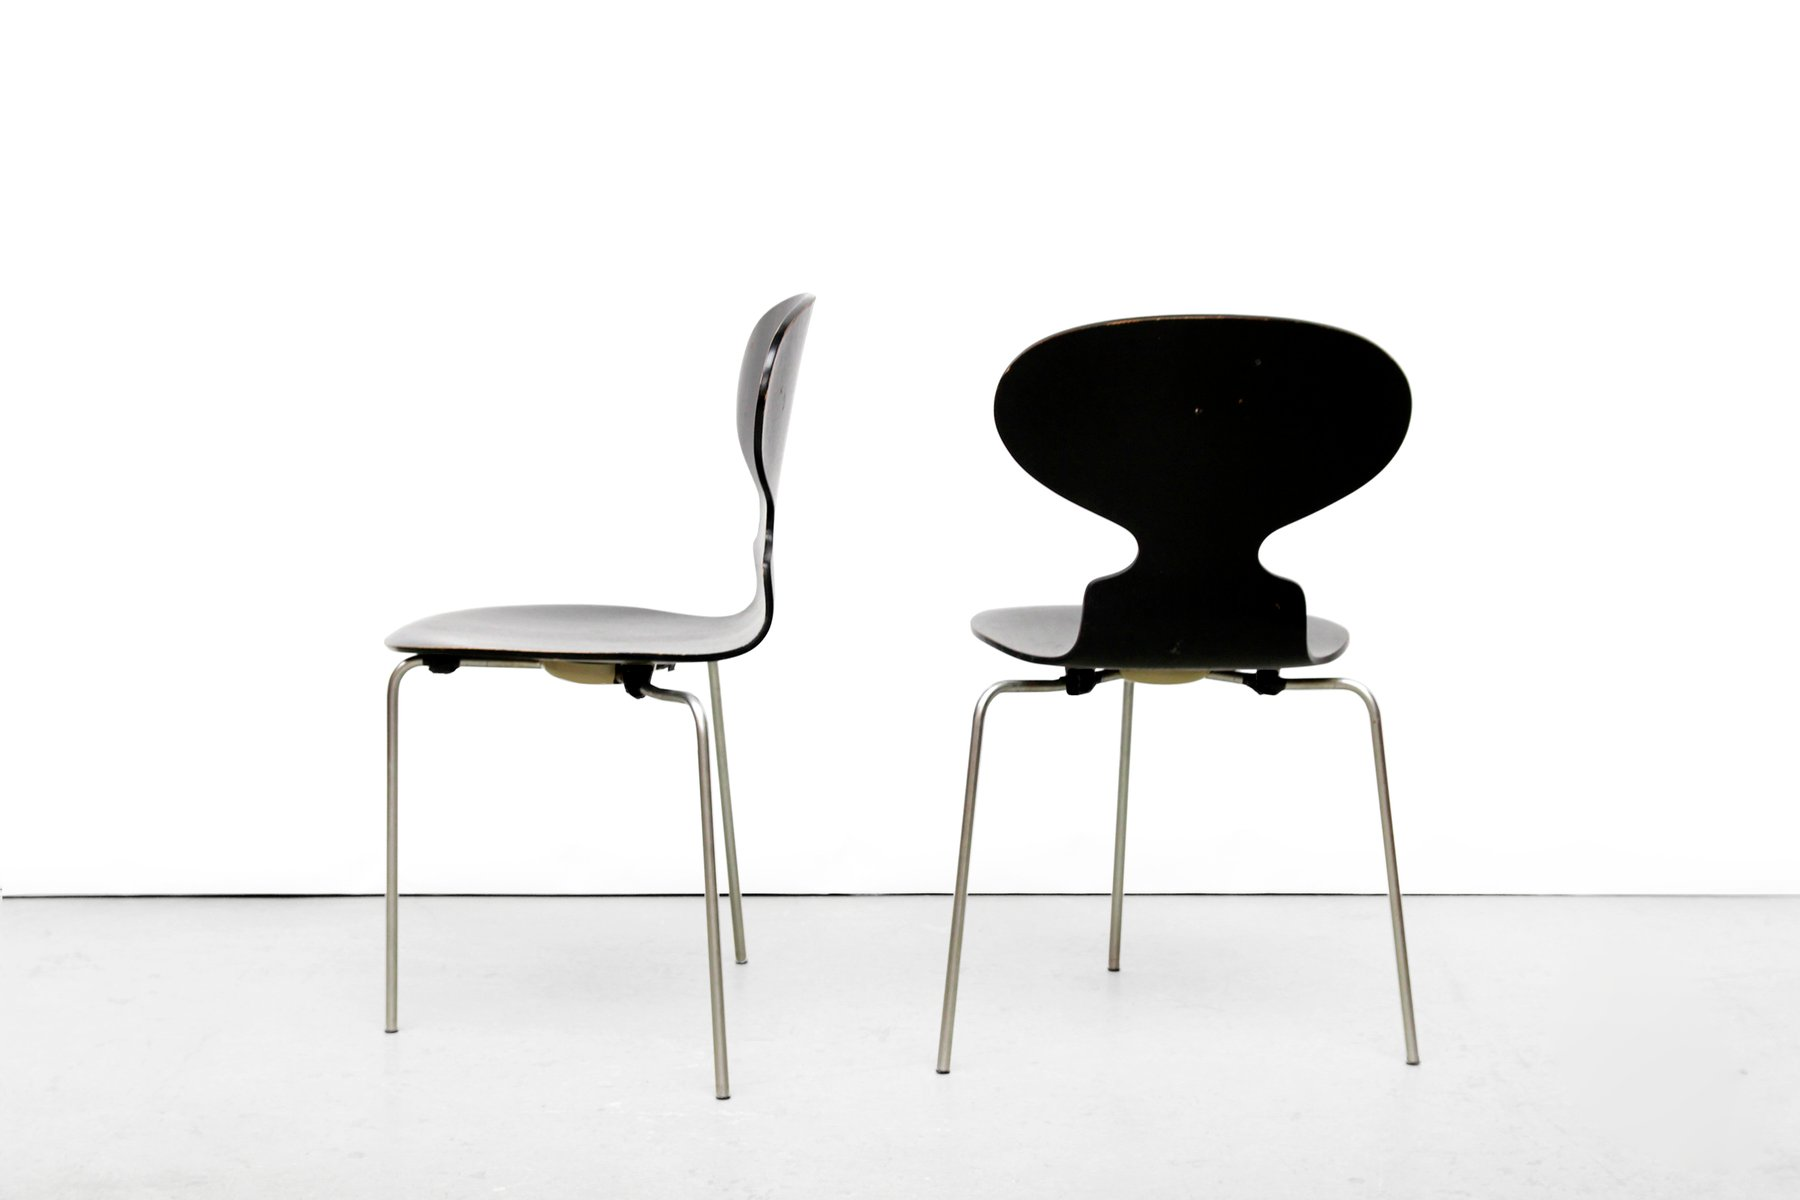 modell fh 3100 ant st hle von arne jacobsen f r fritz hansen 1969 6er set bei pamono kaufen. Black Bedroom Furniture Sets. Home Design Ideas